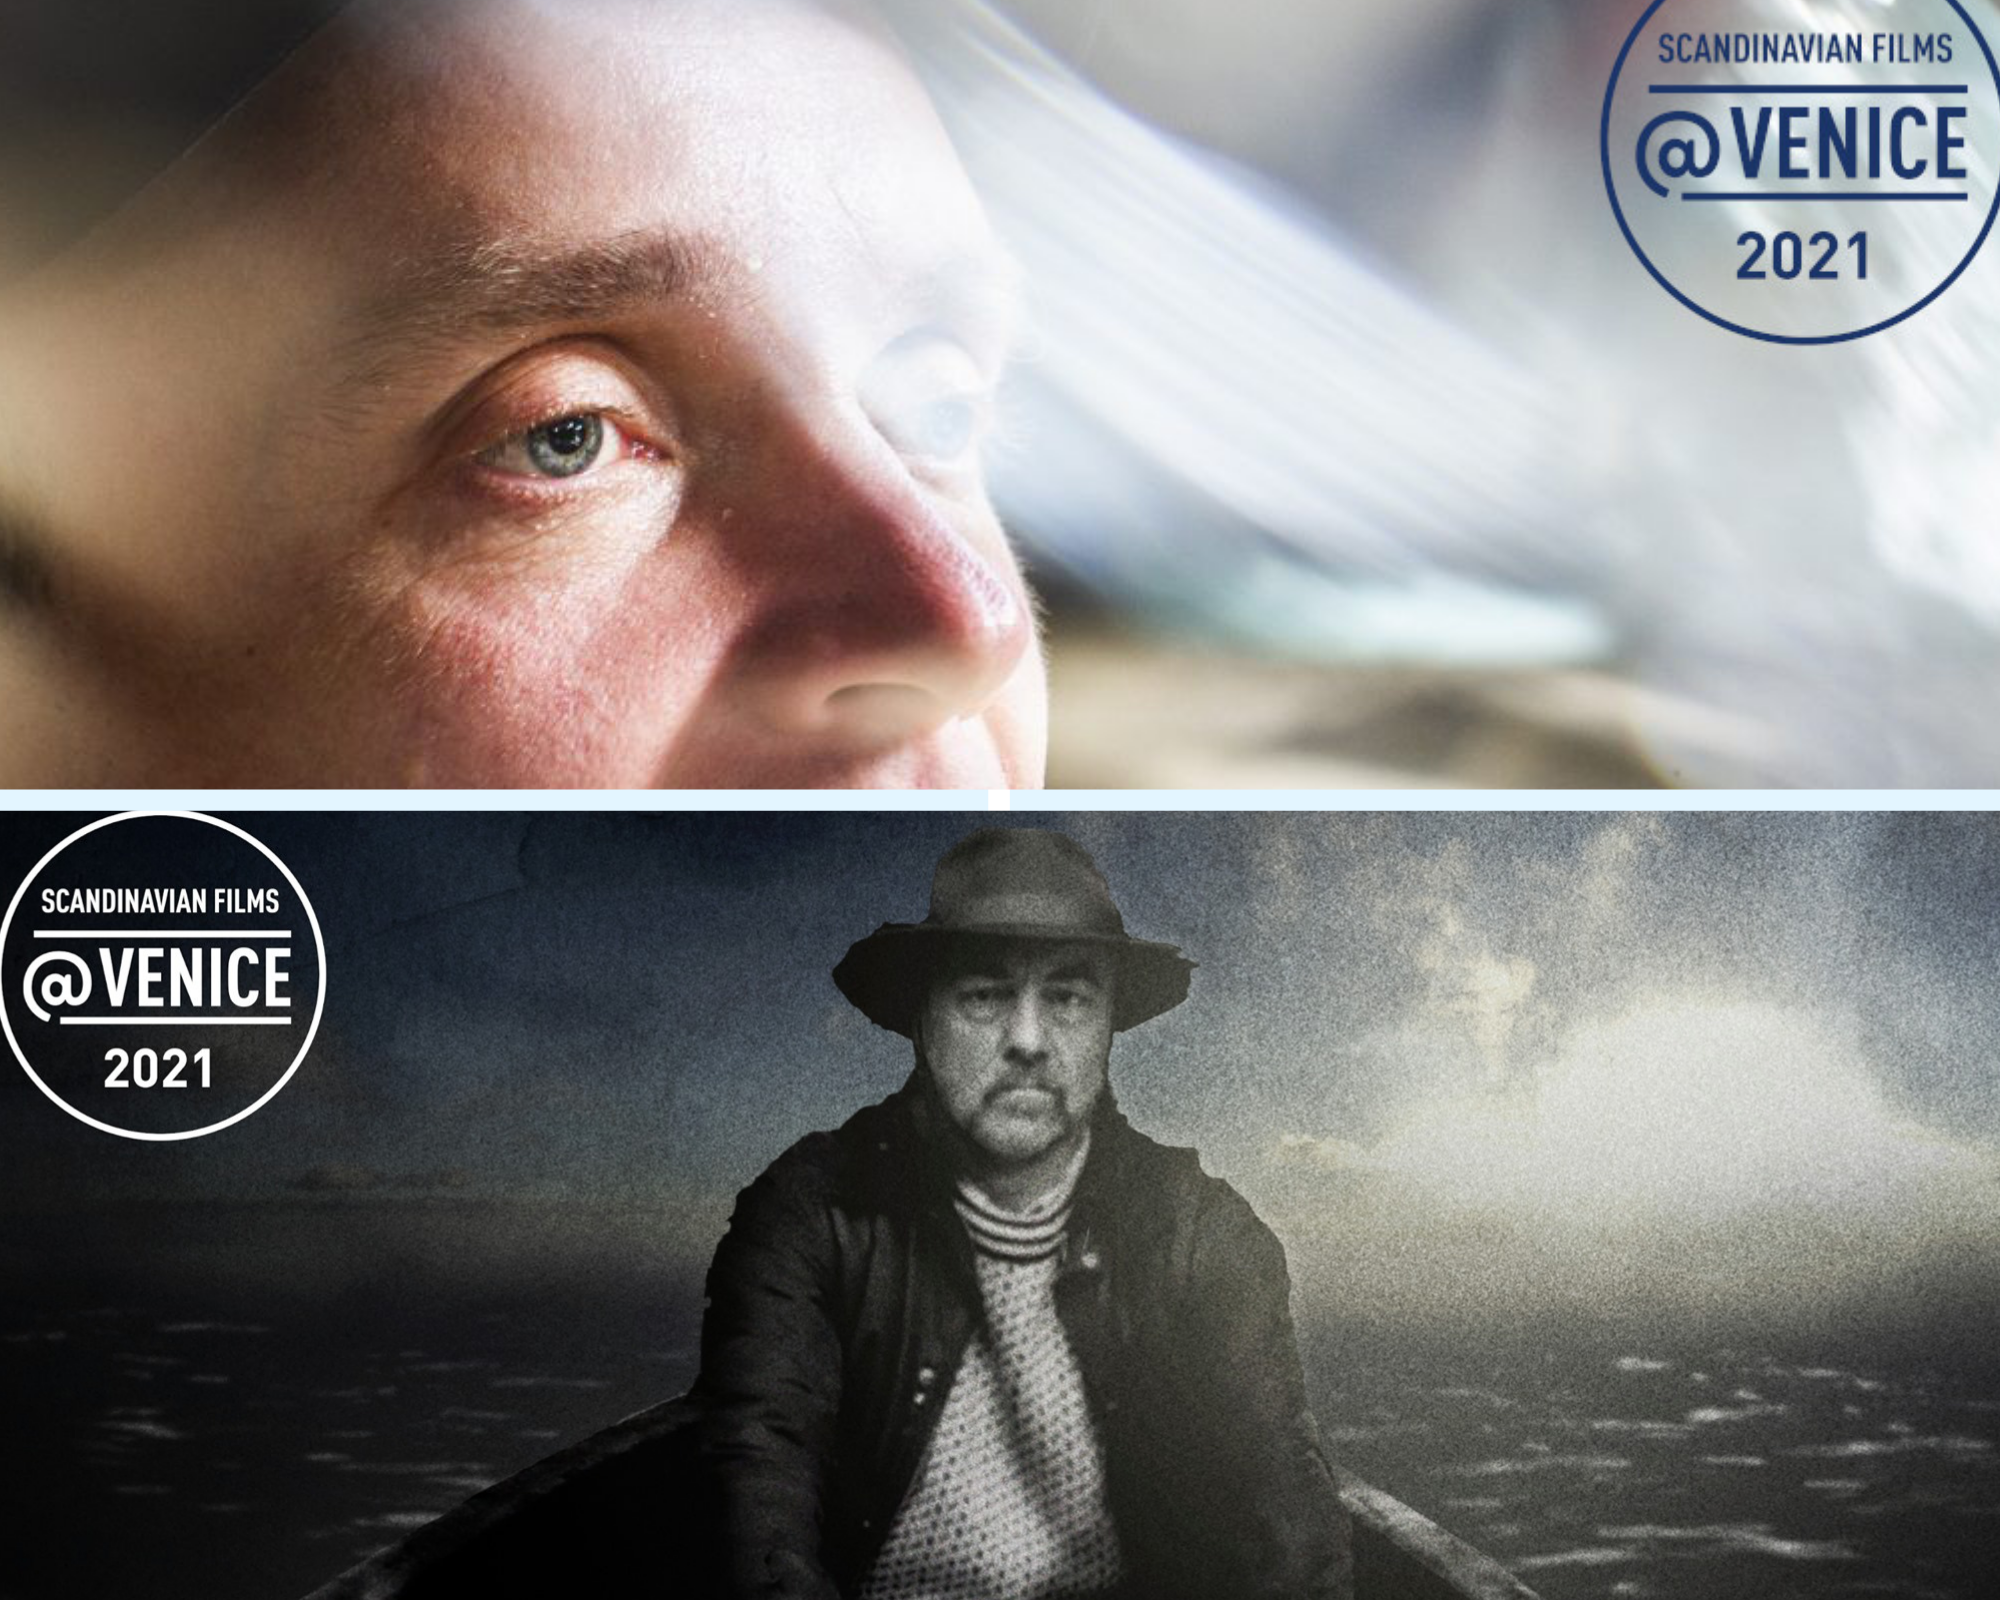 Two awards to Nordic films at Venice